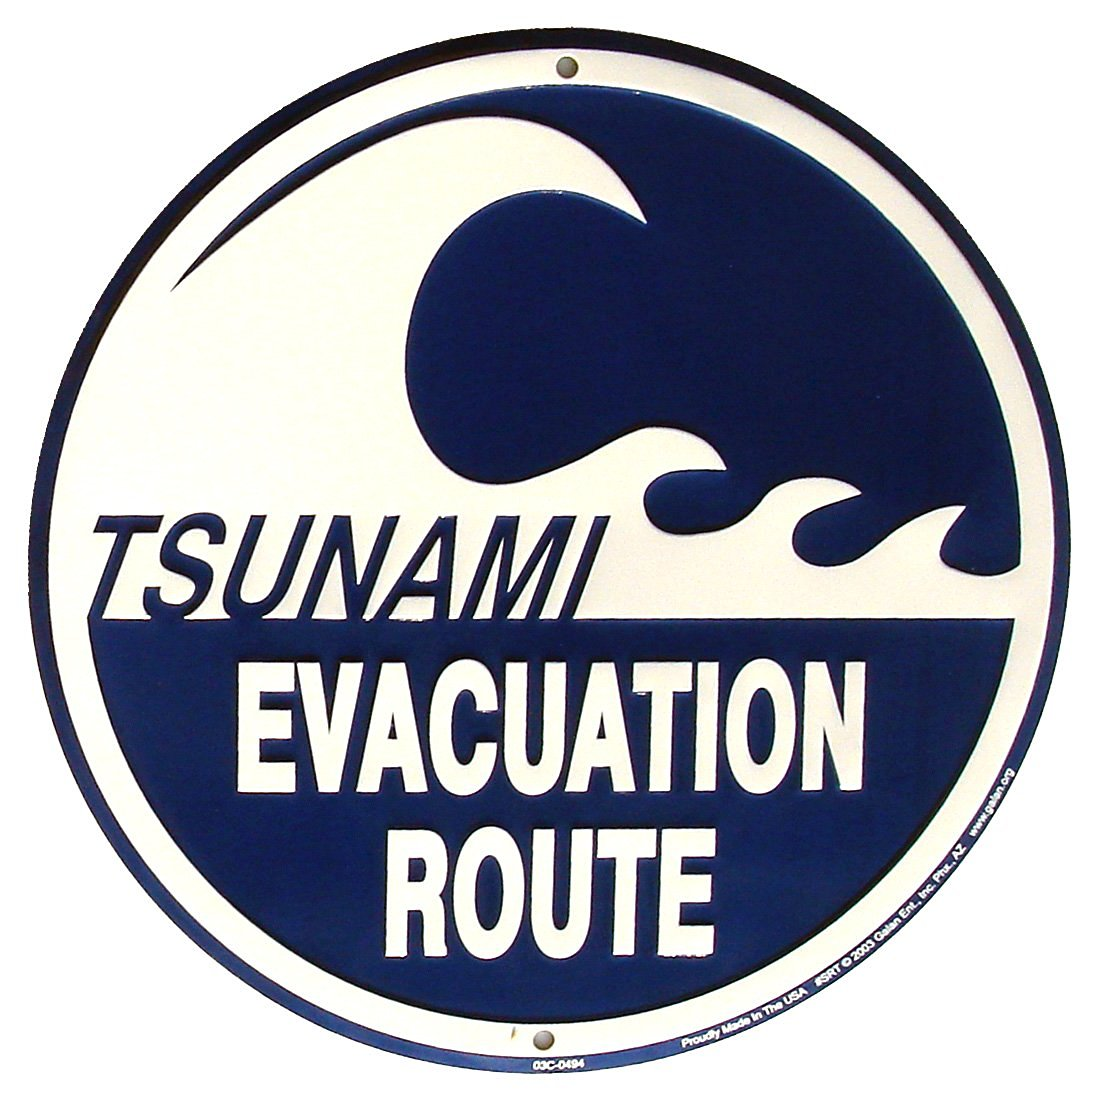 Cheap road sign symbols find road sign symbols deals on line at tsunami evacuation route metal sign warning wave beach road plaque biocorpaavc Choice Image